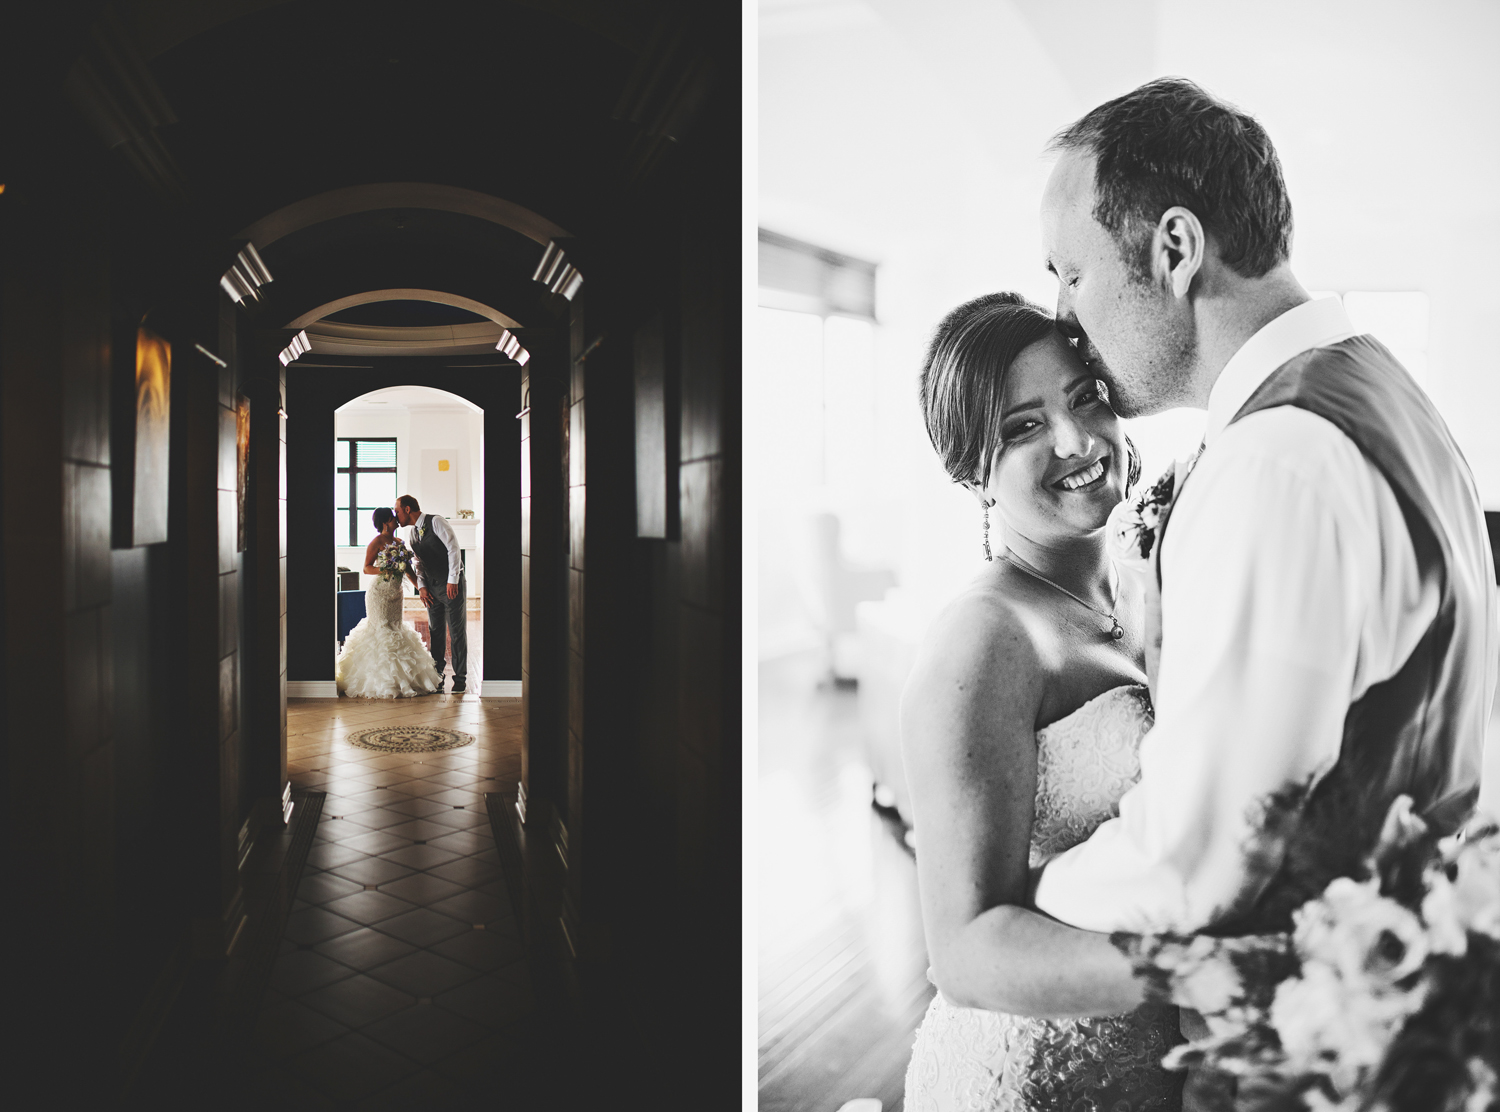 loft310_wedding_photographer_kalamazoo_wedding_photographer_300.jpg